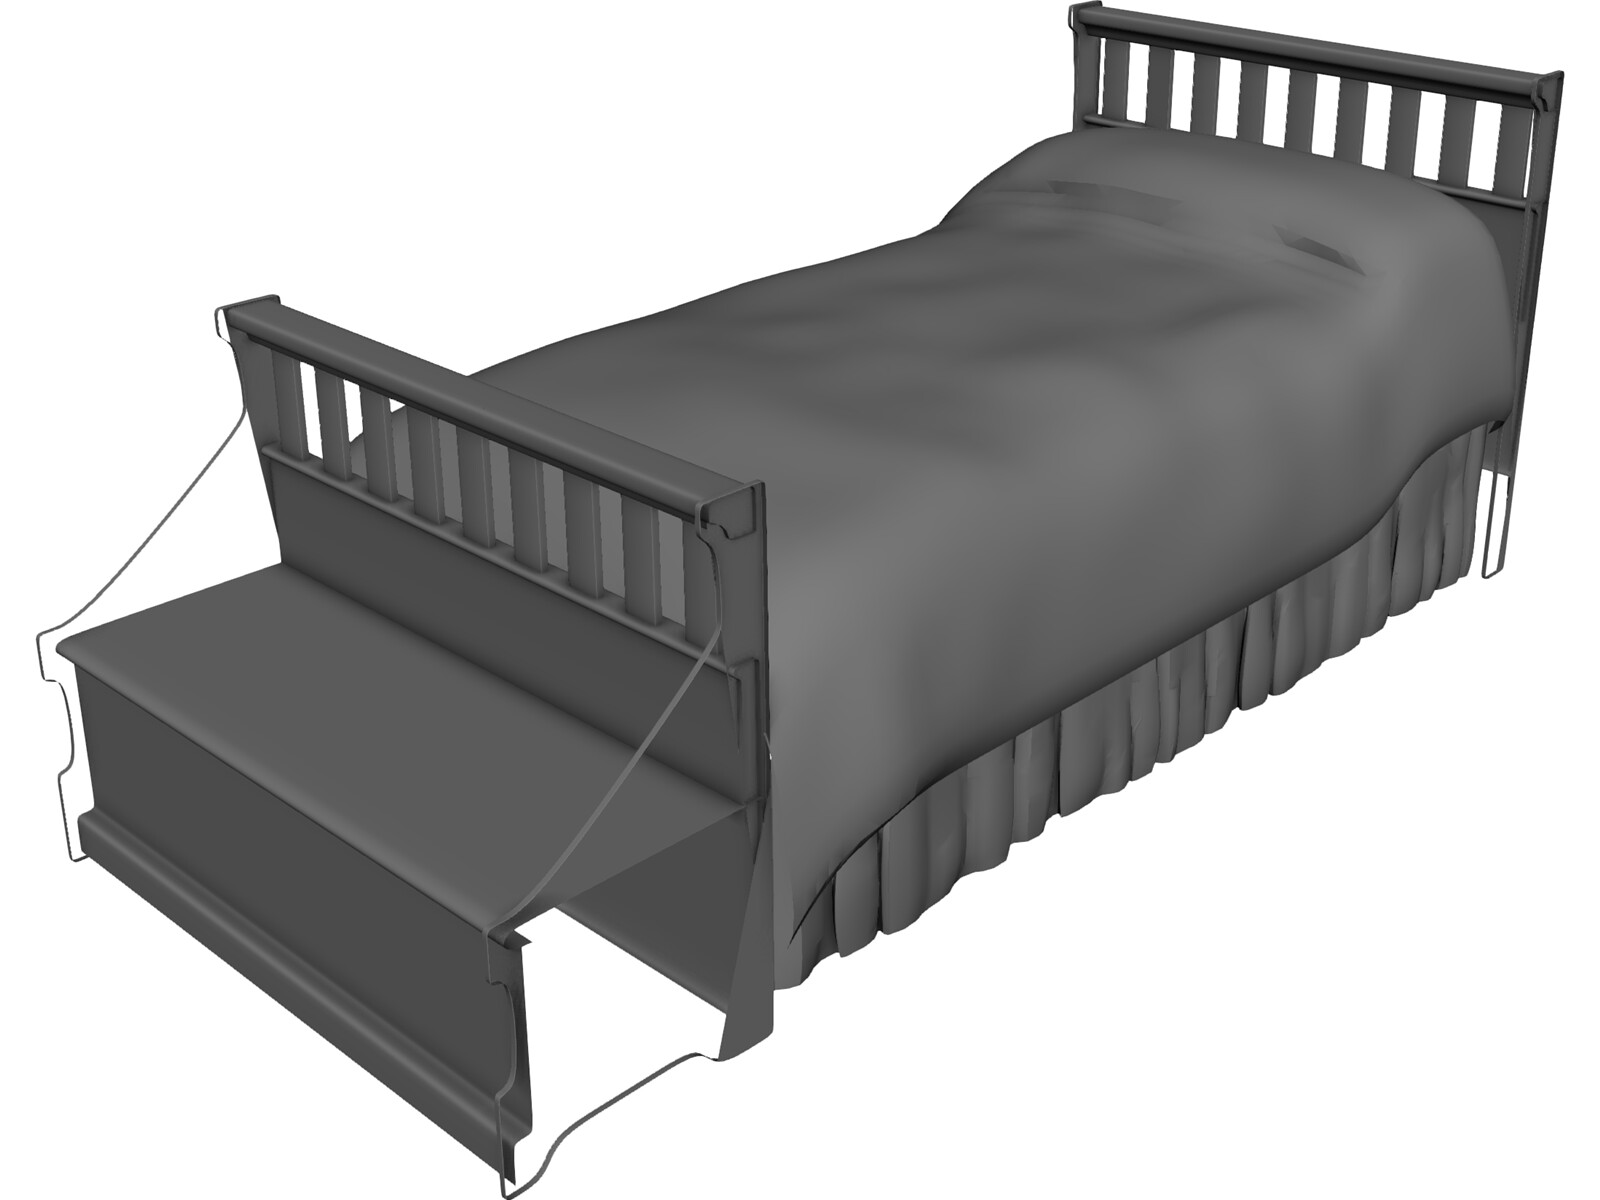 Bed Childs [+Headboard and Chest]